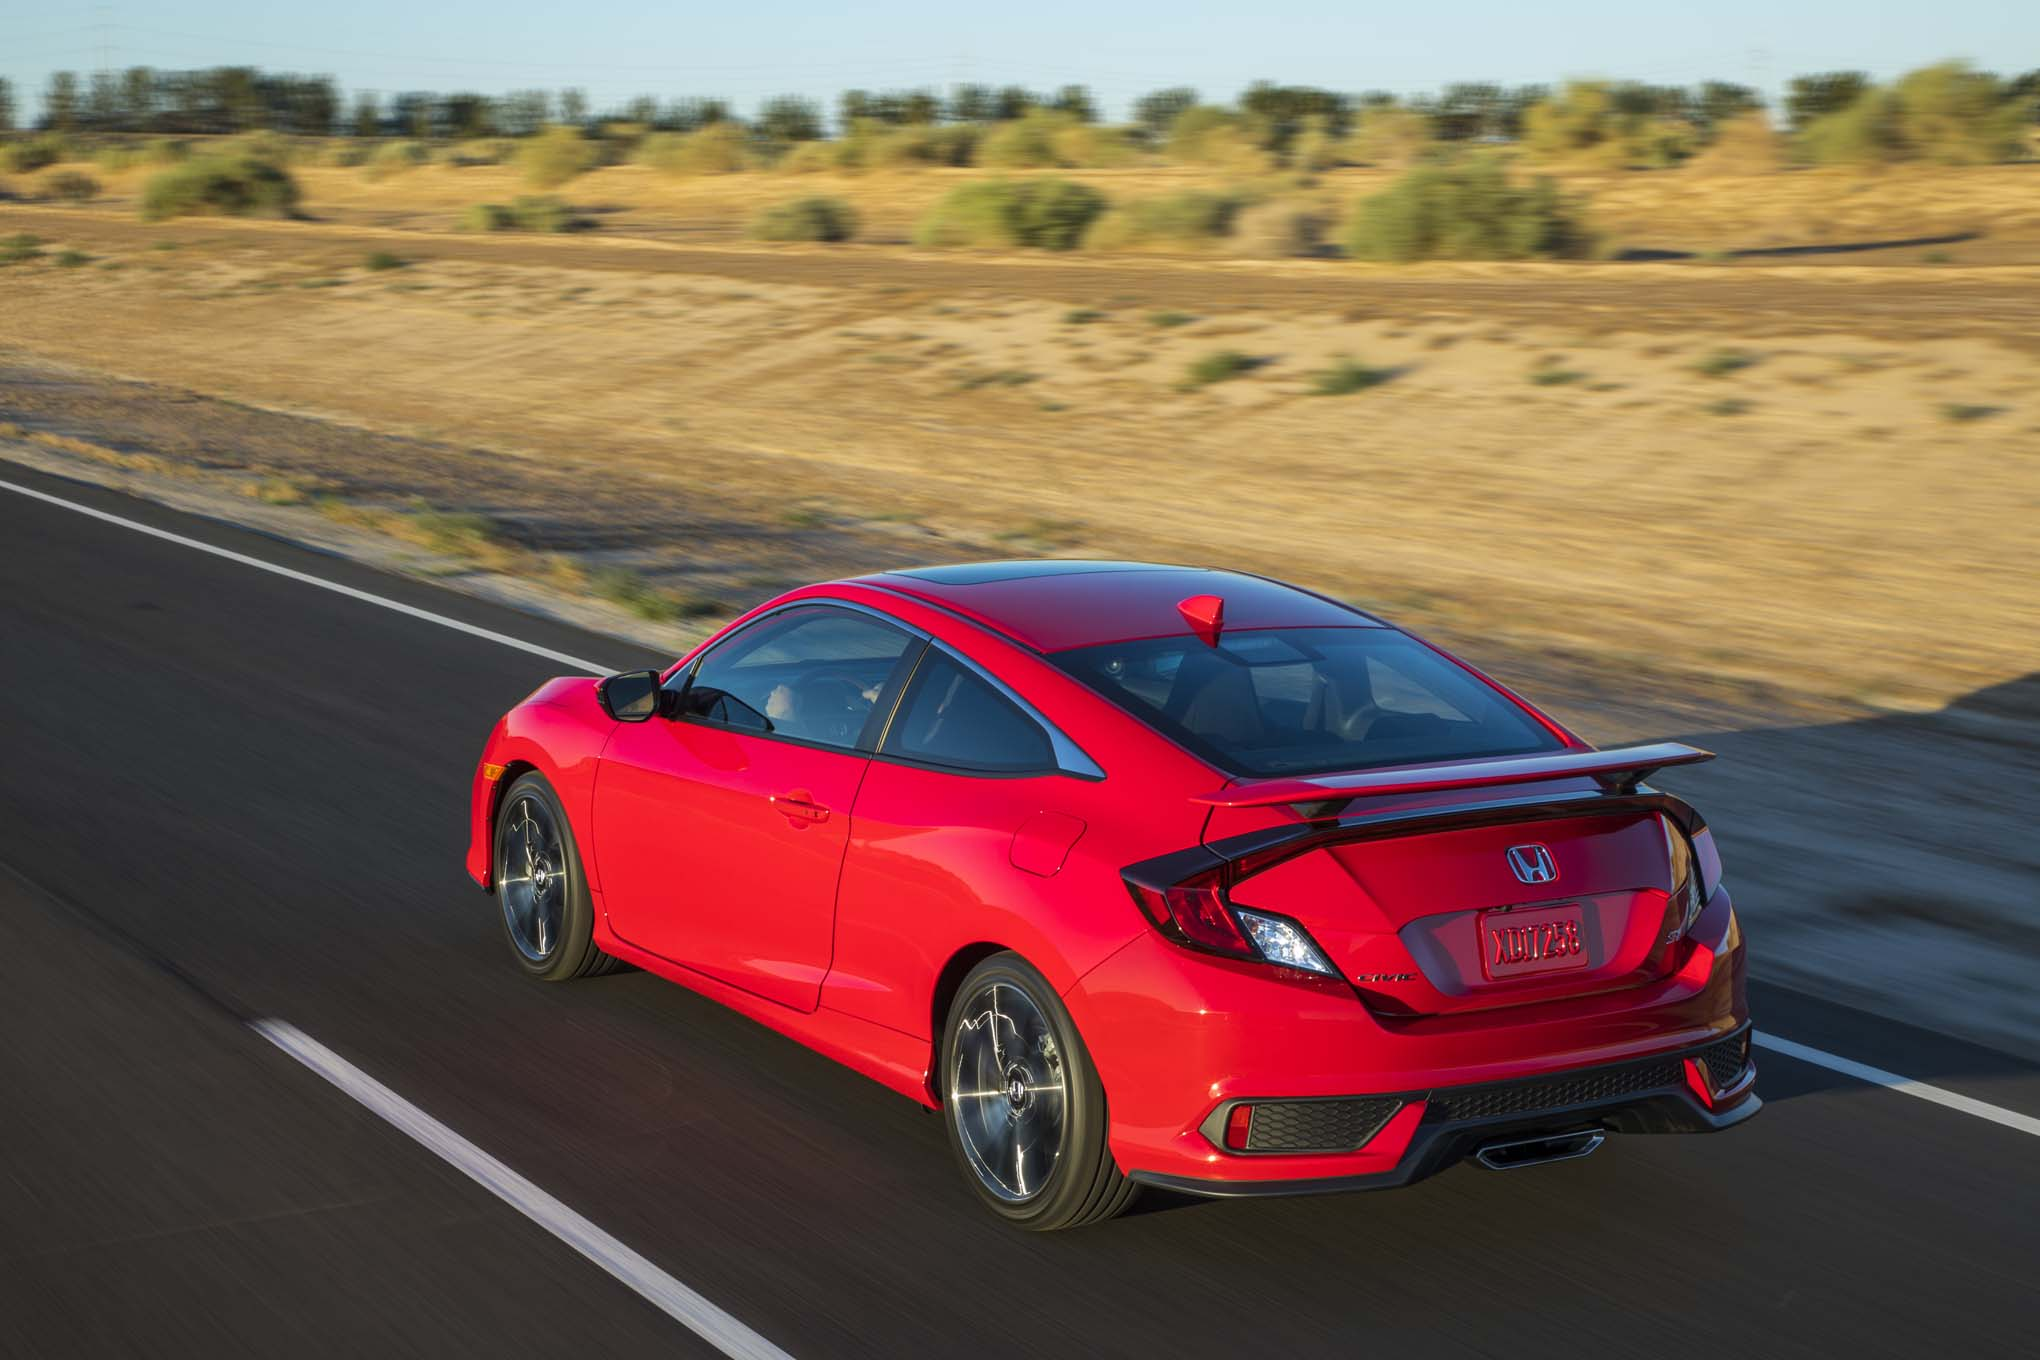 Honda Doesn T Publish Numbers But We Estimate The Civic Si To Be Capable Of Dashing From 0 60 Mph In A Bit More Than 6 Seconds And Hitting Top Sd